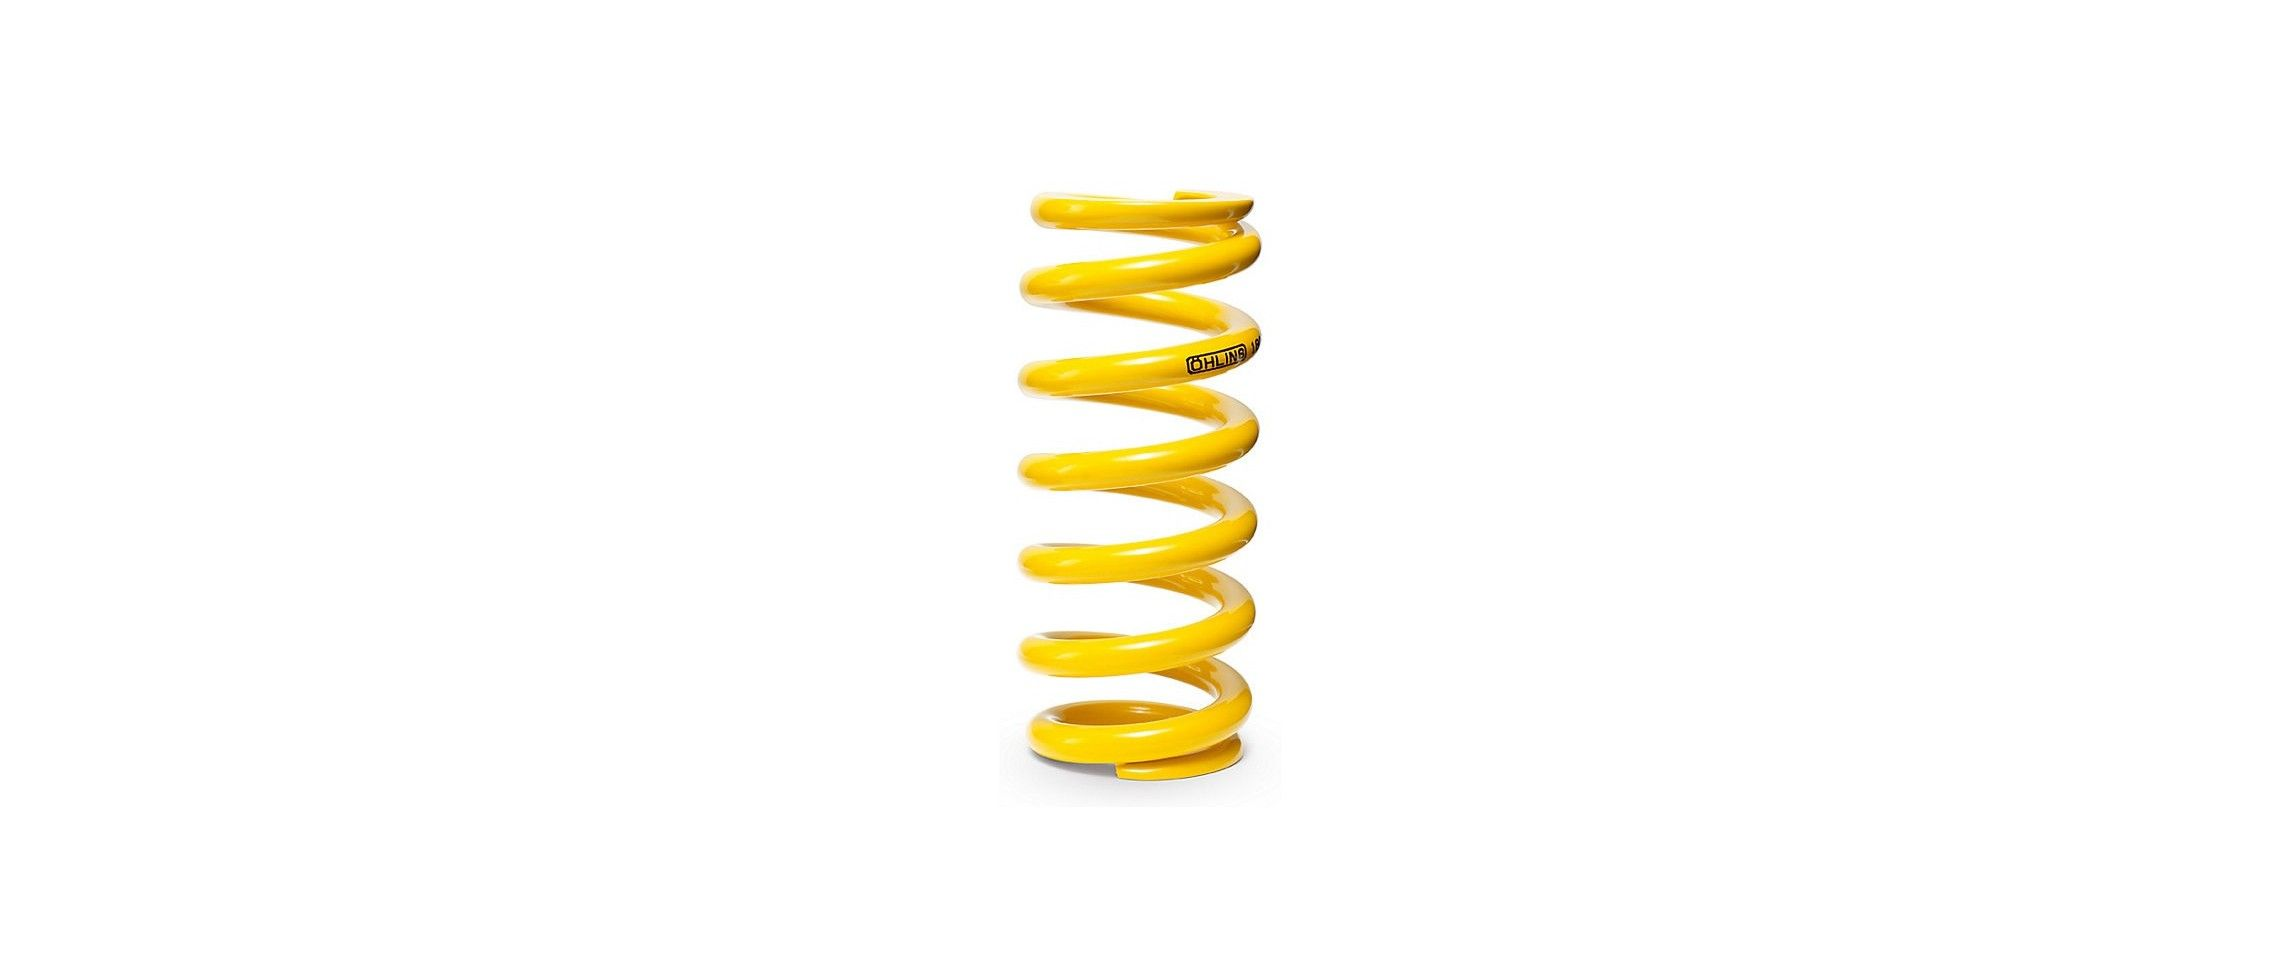 OHLINS 85 875 ENDURO SPRING 76 N MM 434 LB IN 18070 09